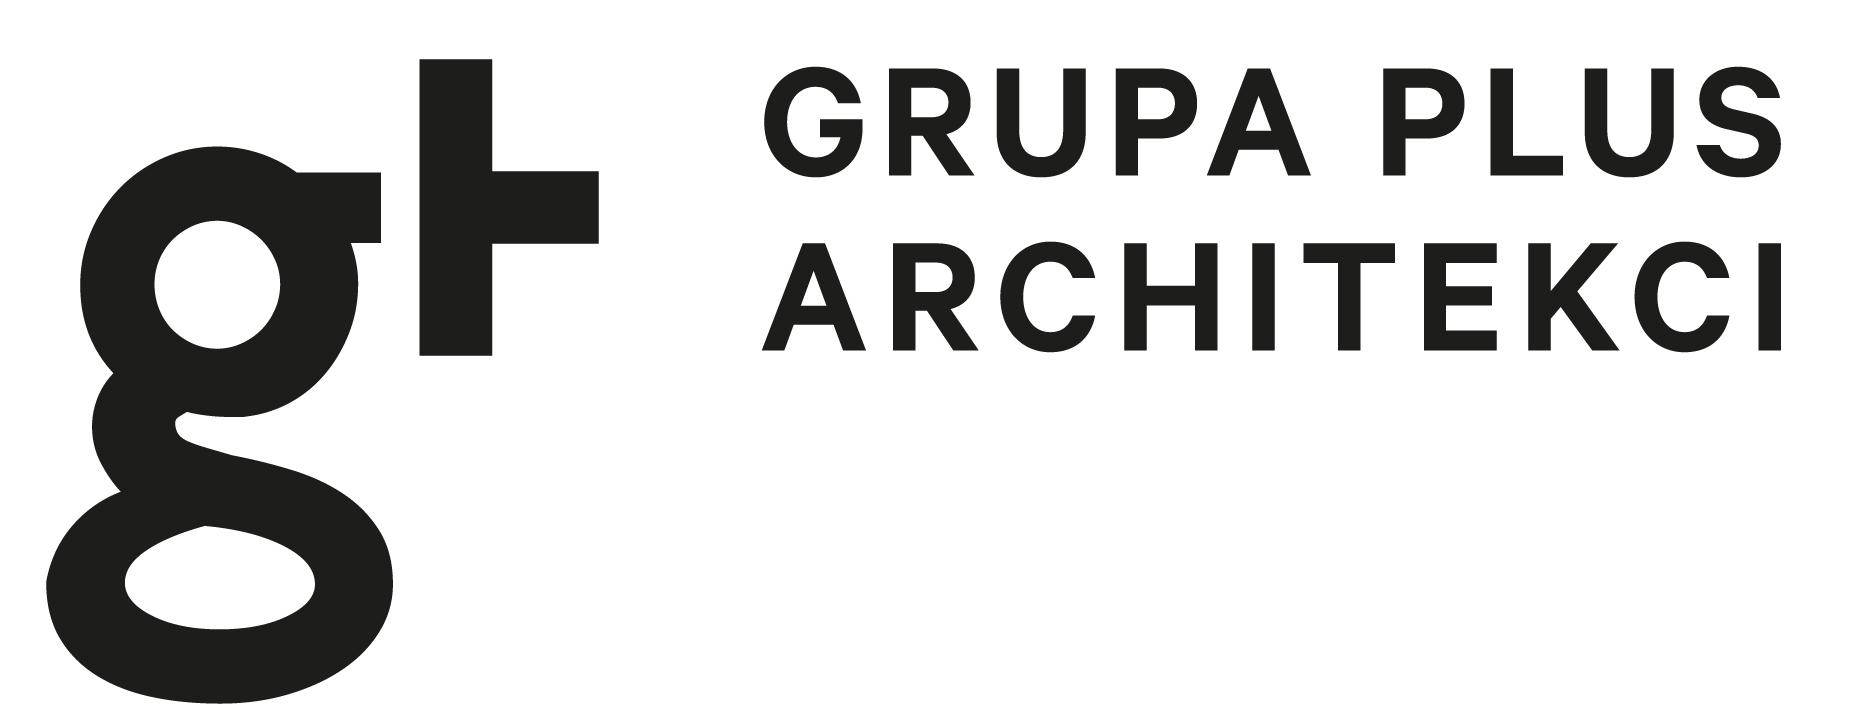 Grupa Plus Architekci